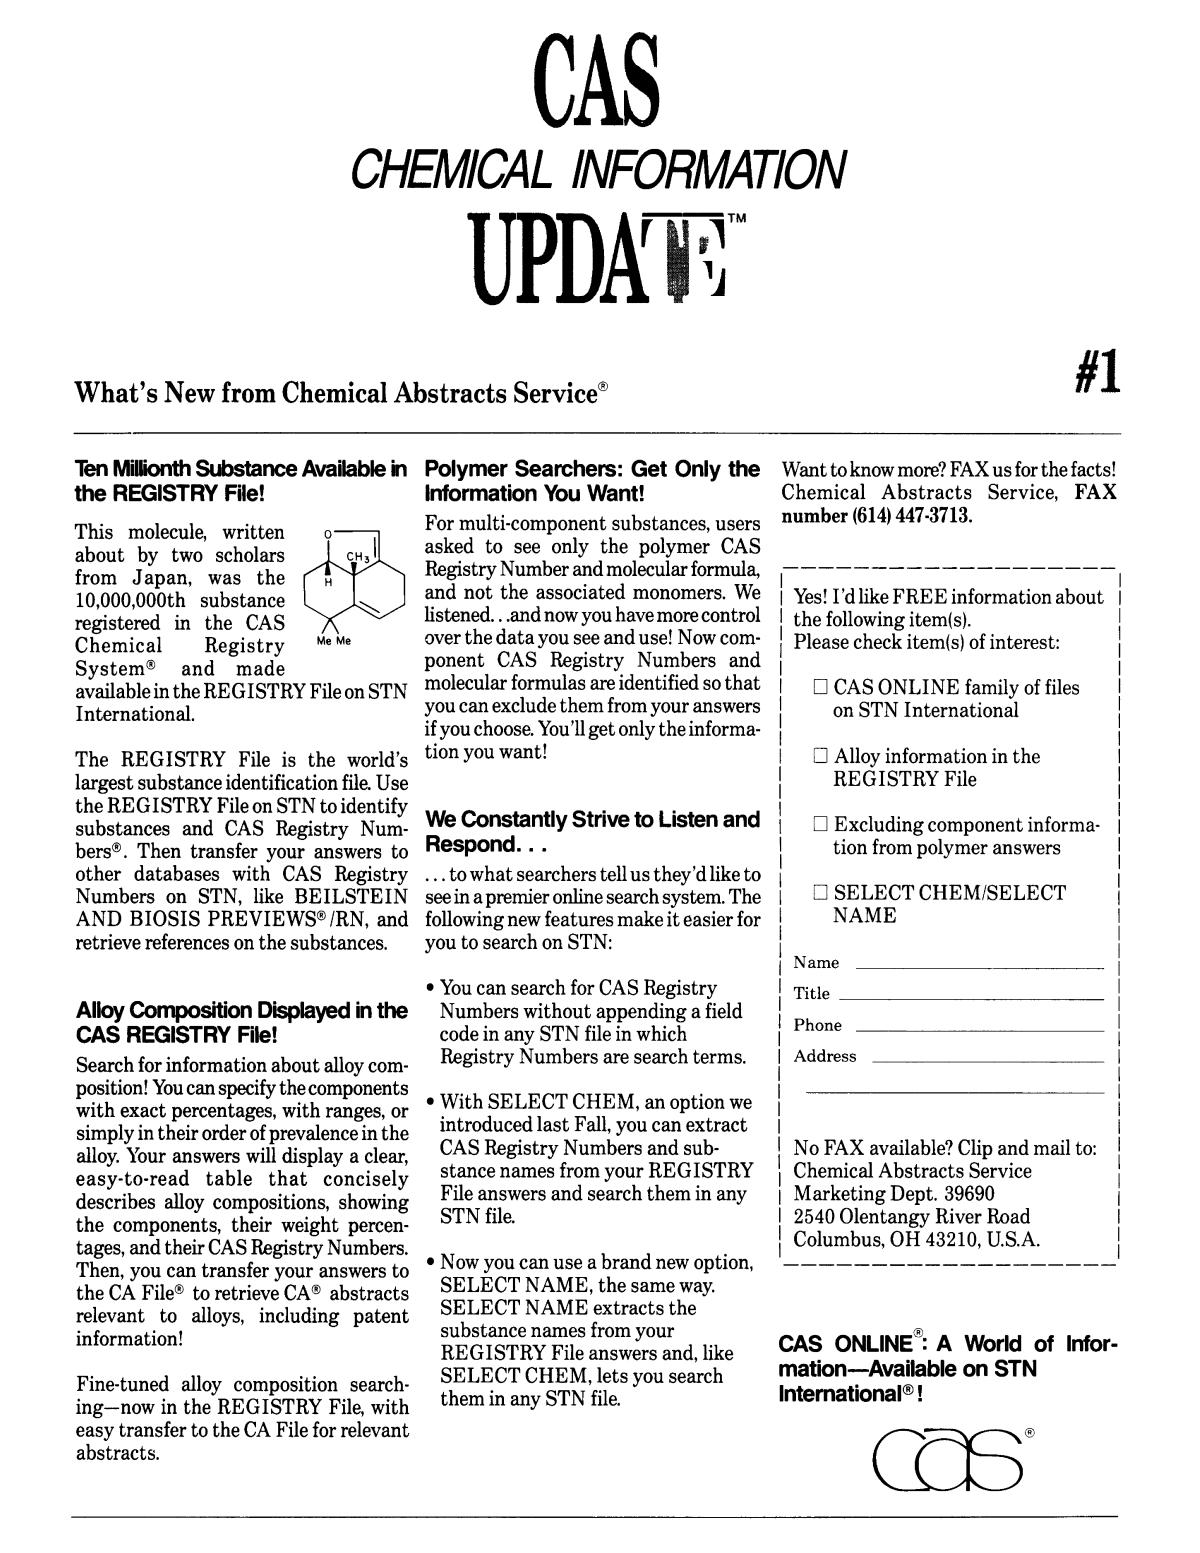 Chemical Information Bulletin, Volume 42, Number 3, Fall/Winter 1990                                                                                                      3